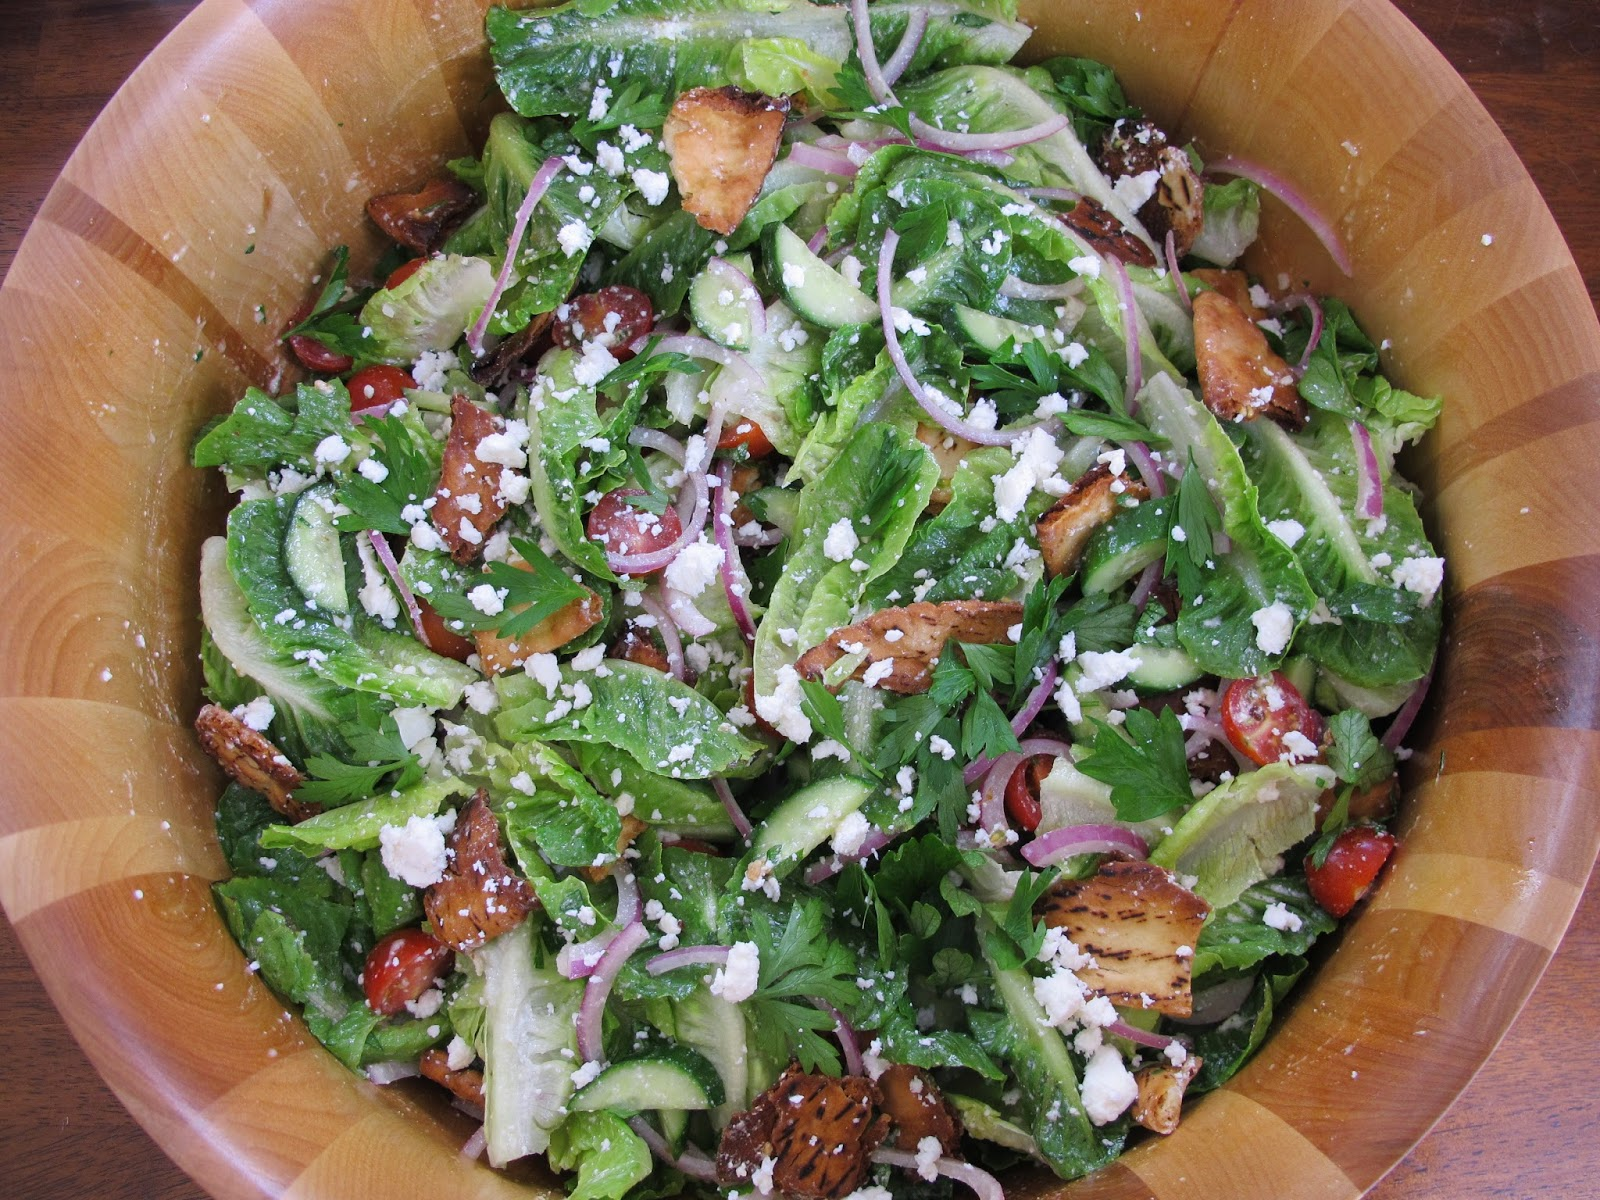 AOC Cookbook Fattoush Salad with Crispy Pita Chips and Creamy Lemon Dressing